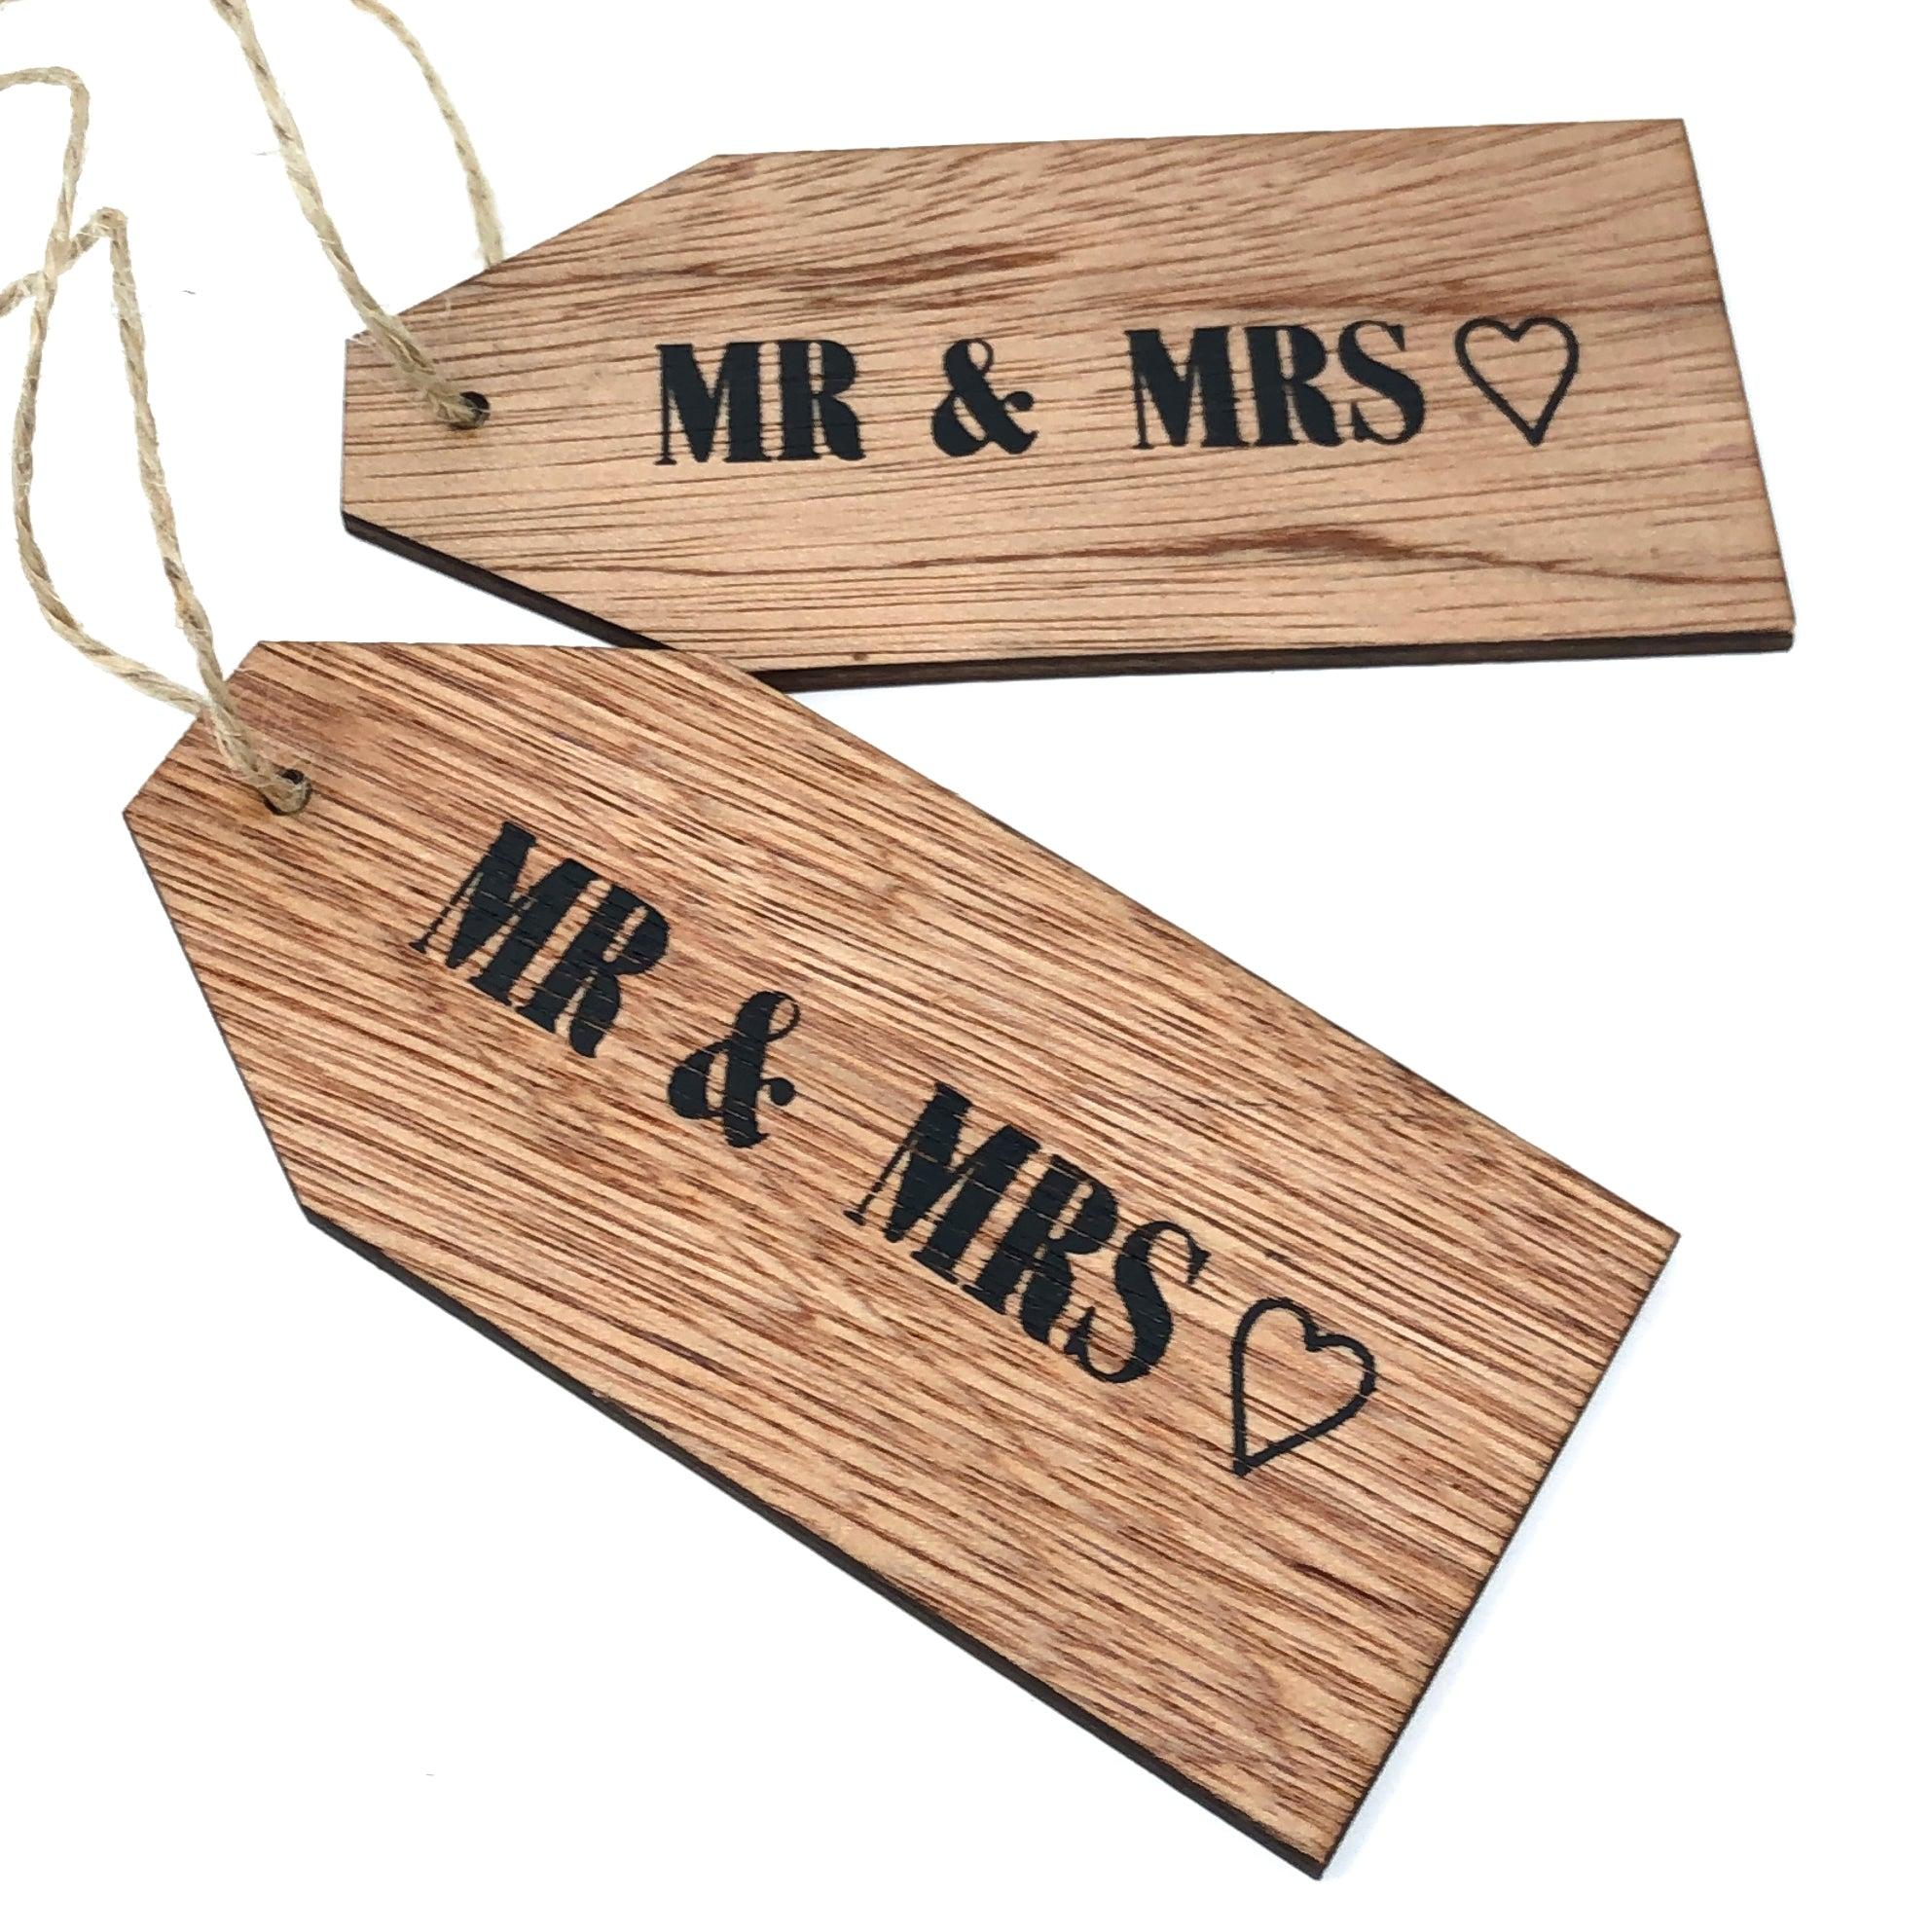 Mr & Mrs Wooden Wedding Tags